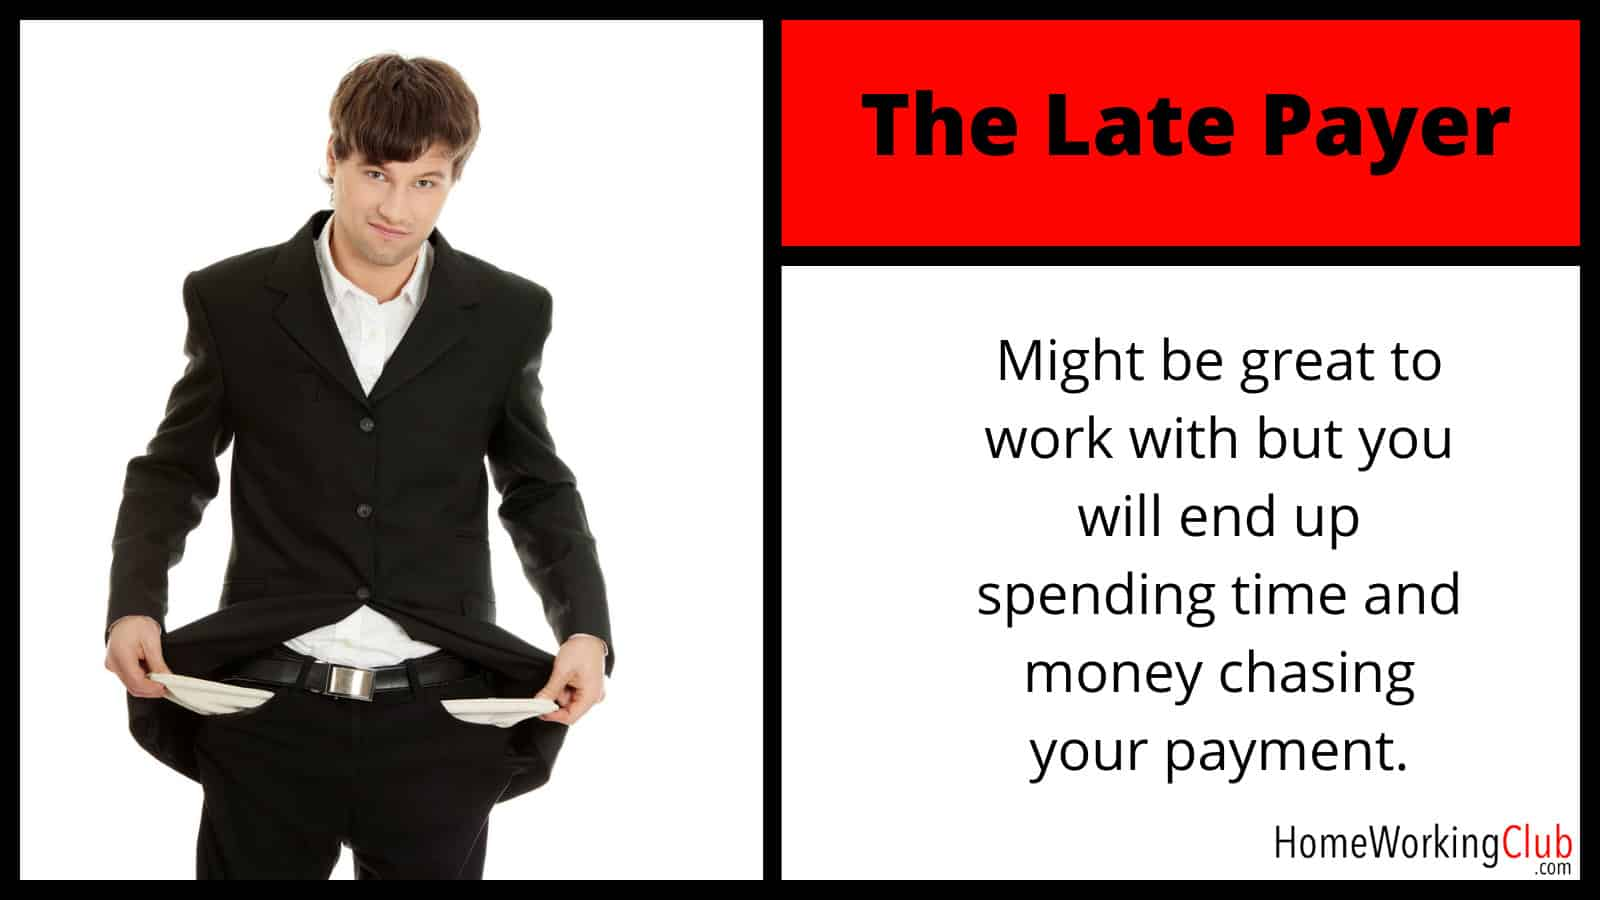 Client Type: The Late Payer